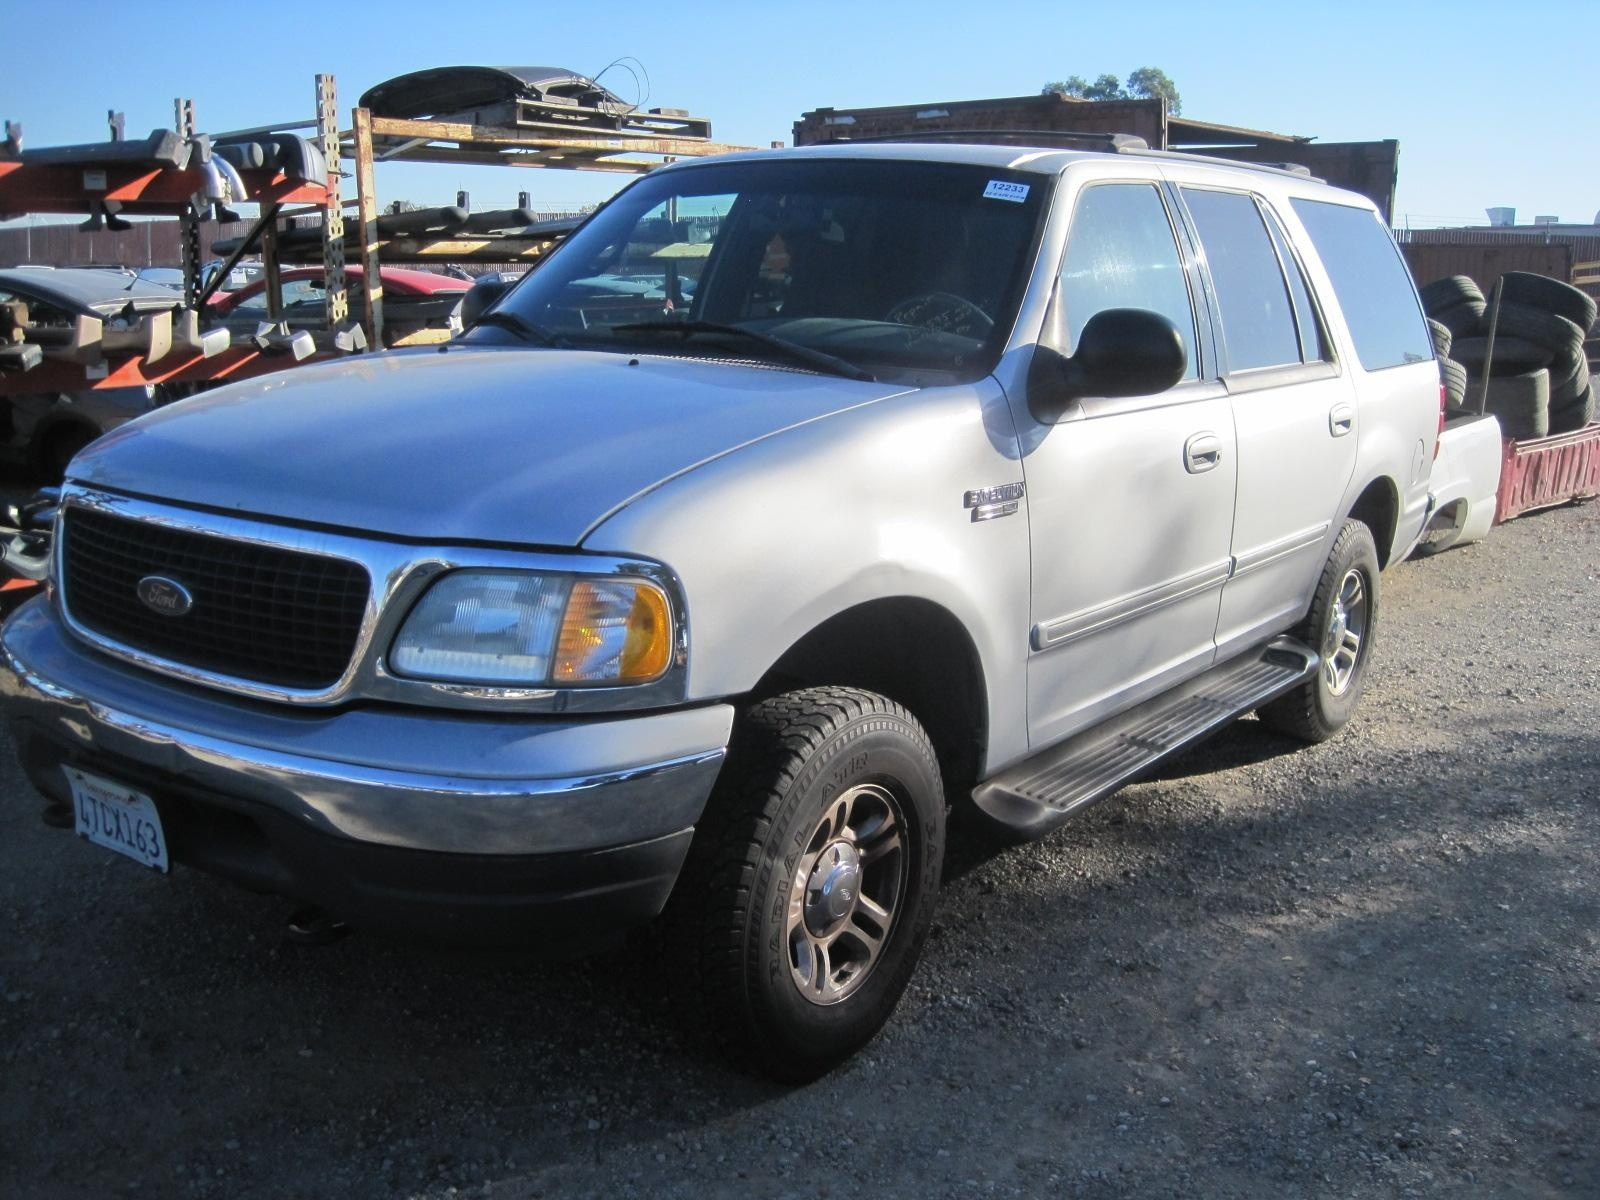 Ford expedition questions i have a 2002 ford expedition that will not drive faster than 15 mph cargurus